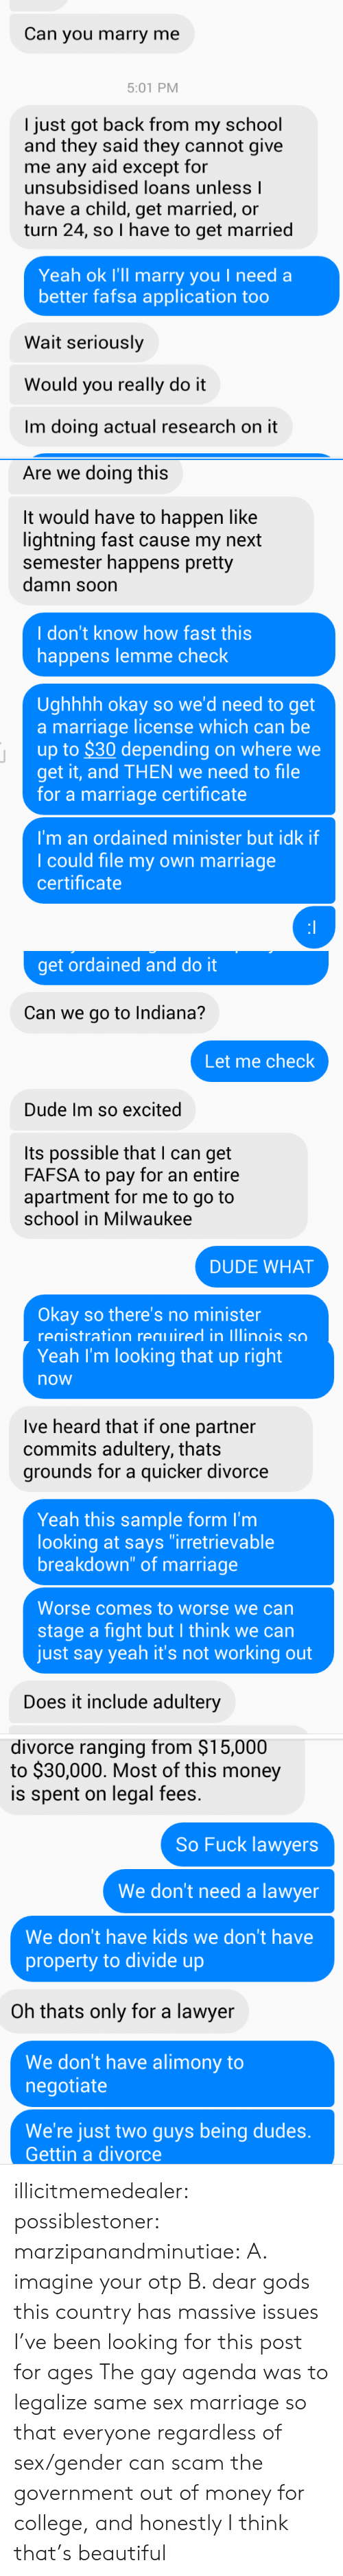 """FAFSA: Can you marry me  5:01 PM  I just got back from my school  and they said they cannot give  me any aid except for  unsubsidised loans unless l  have a child, get married, or  turn 24, so I have to get married  Yeah ok I'll marry you I need a  better fafsa application too  Wait seriously  Would you really do it  Im doing actual research on it   Are we doing this  It would have to happen like  lightning fast cause my next  semester happens pretty  damn soon  I don't know how fast this  happens lemme check  Ughhhh okay so we'd need to get  a marriage license which can be  up to $30 depending on where we  get it, and THEN we need to file  for a marriage certificate  I'm an ordained minister but idk if  I could file my own marriage  certificate   get ordained and do it  Can we go to Indiana?  Let me check  Dude Im so excited  Its possible that I can get  FAFSA to pay for an entire  apartment for me to go to  school in Milwaukee  DUDE WHAT  Okay so there's no minister  registration required in lllinois so   Yeah I'm looking that up right  now  Ive heard that if one partner  commits adultery, thats  grounds for a quicker divorce  Yeah this sample form I'm  looking at says """"irretrievable  breakdown"""" of marriage  Worse comes to worse we can  stage a fight but I think we can  just say yeah it's not working out  Does it include adultery   divorce ranging from $15,000  to $30,000. Most of this money  is spent on legal fees.  So Fuck lawyers  We don't need a lawyer  We don't have kids we don't have  property to divide up  Oh thats only for a lawyer  We don't have alimony to  negotiate  We're just two guys being dudes.  Gettin a divorce illicitmemedealer:  possiblestoner:  marzipanandminutiae:  A. imagine your otp B. dear gods this country has massive issues  I've been looking for this post for ages   The gay agenda was to legalize same sex marriage so that everyone regardless of sex/gender can scam the government out of money for college, and honestly I think that's beauti"""